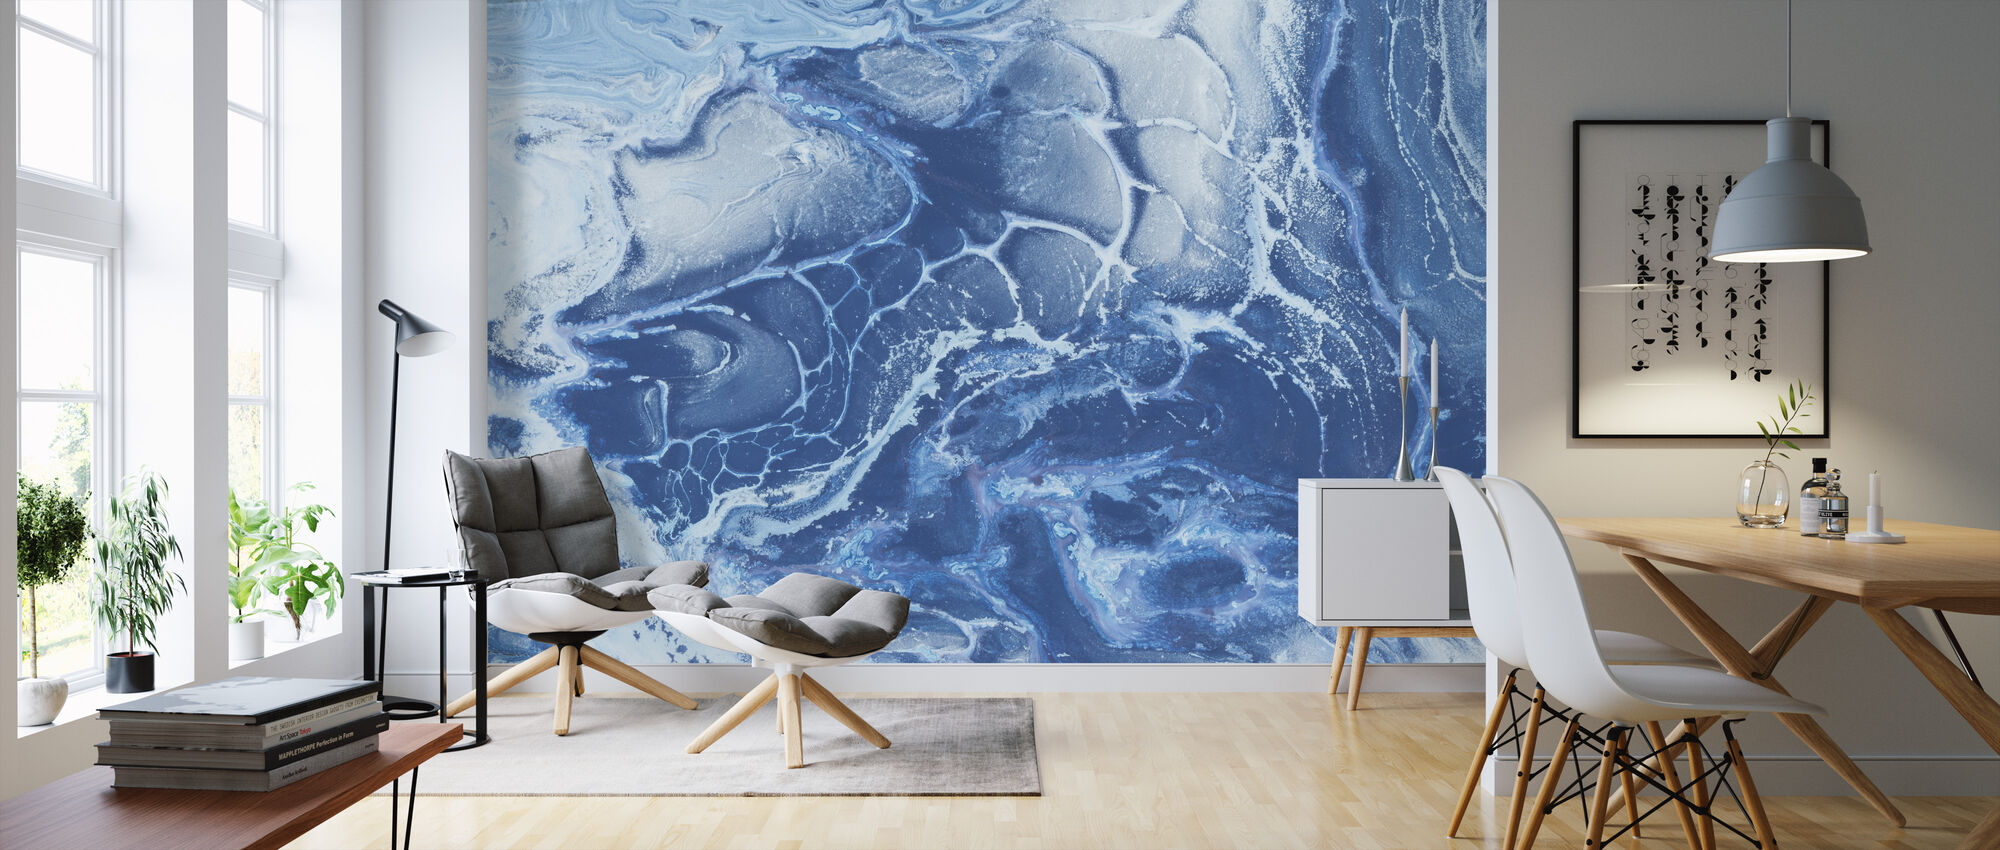 Artic Ocean Texture - Wallpaper - Living Room